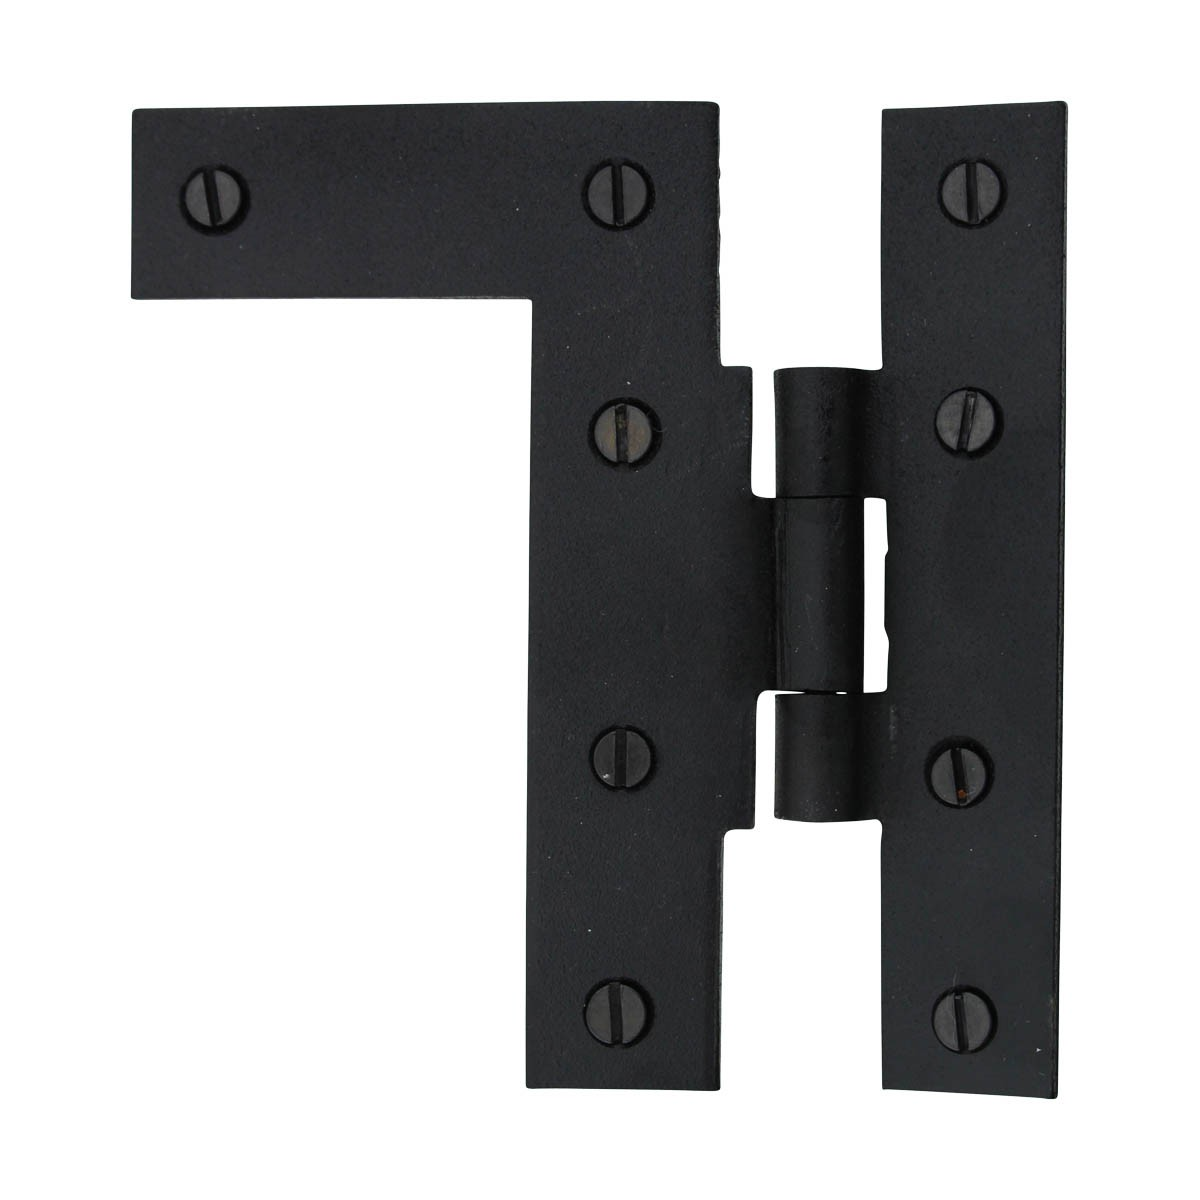 Offset HL Cabinet Hinge Black Iron Left 4.5H Wrought Iron Door Hinges Black Door Hinges Rustproof Cabinet Hinges